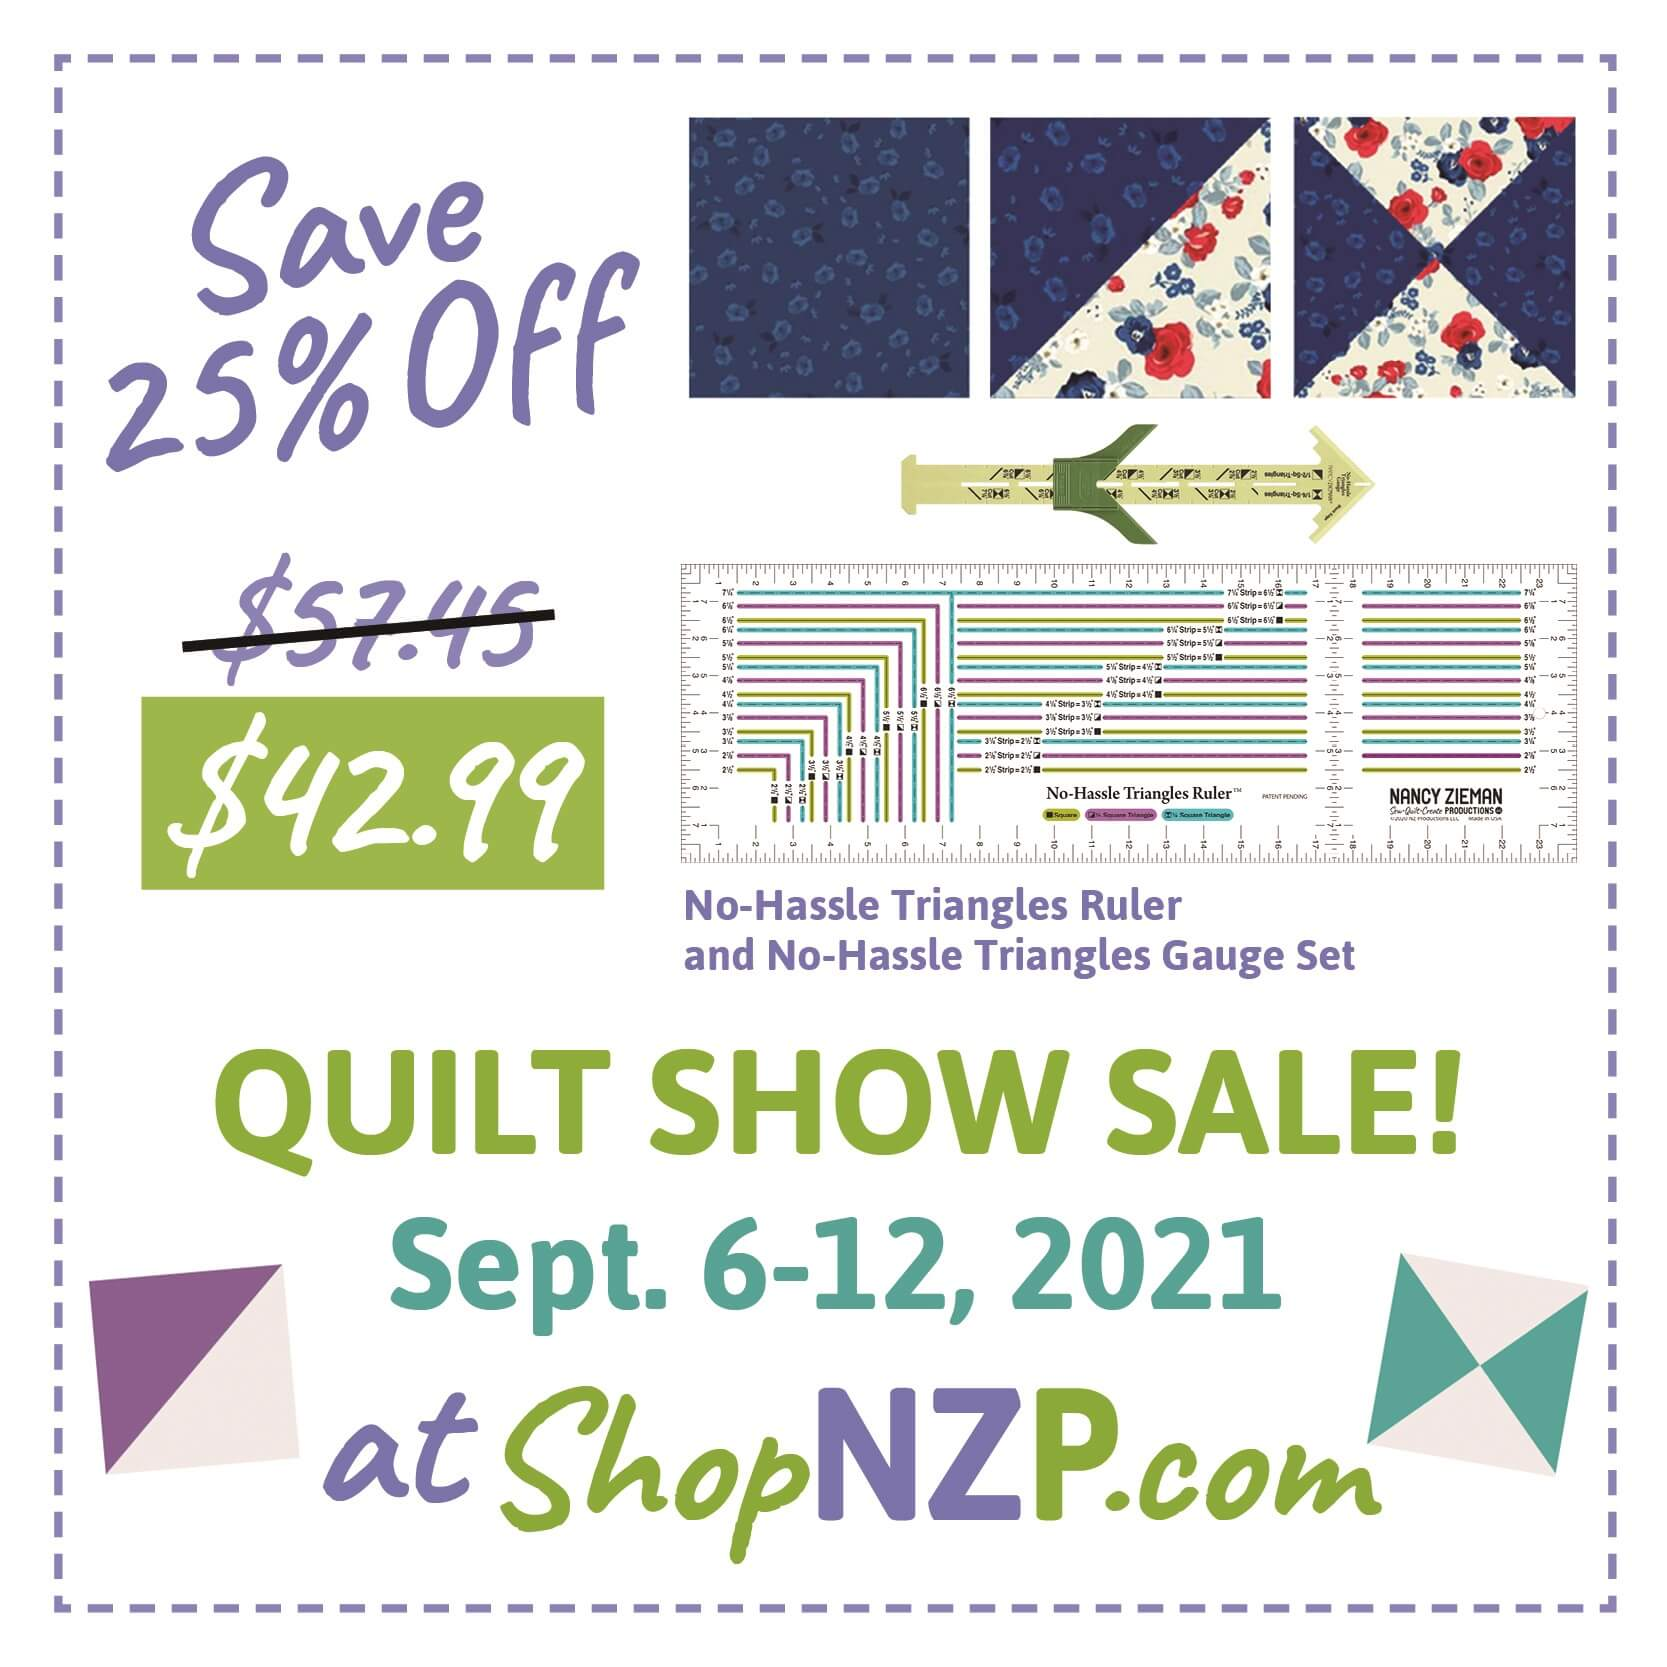 Save 25 Percent off No-Hassle Triangles Ruler and No-Hassle Triangles Gauge Set at Nancy Zieman Productions at ShopNZP